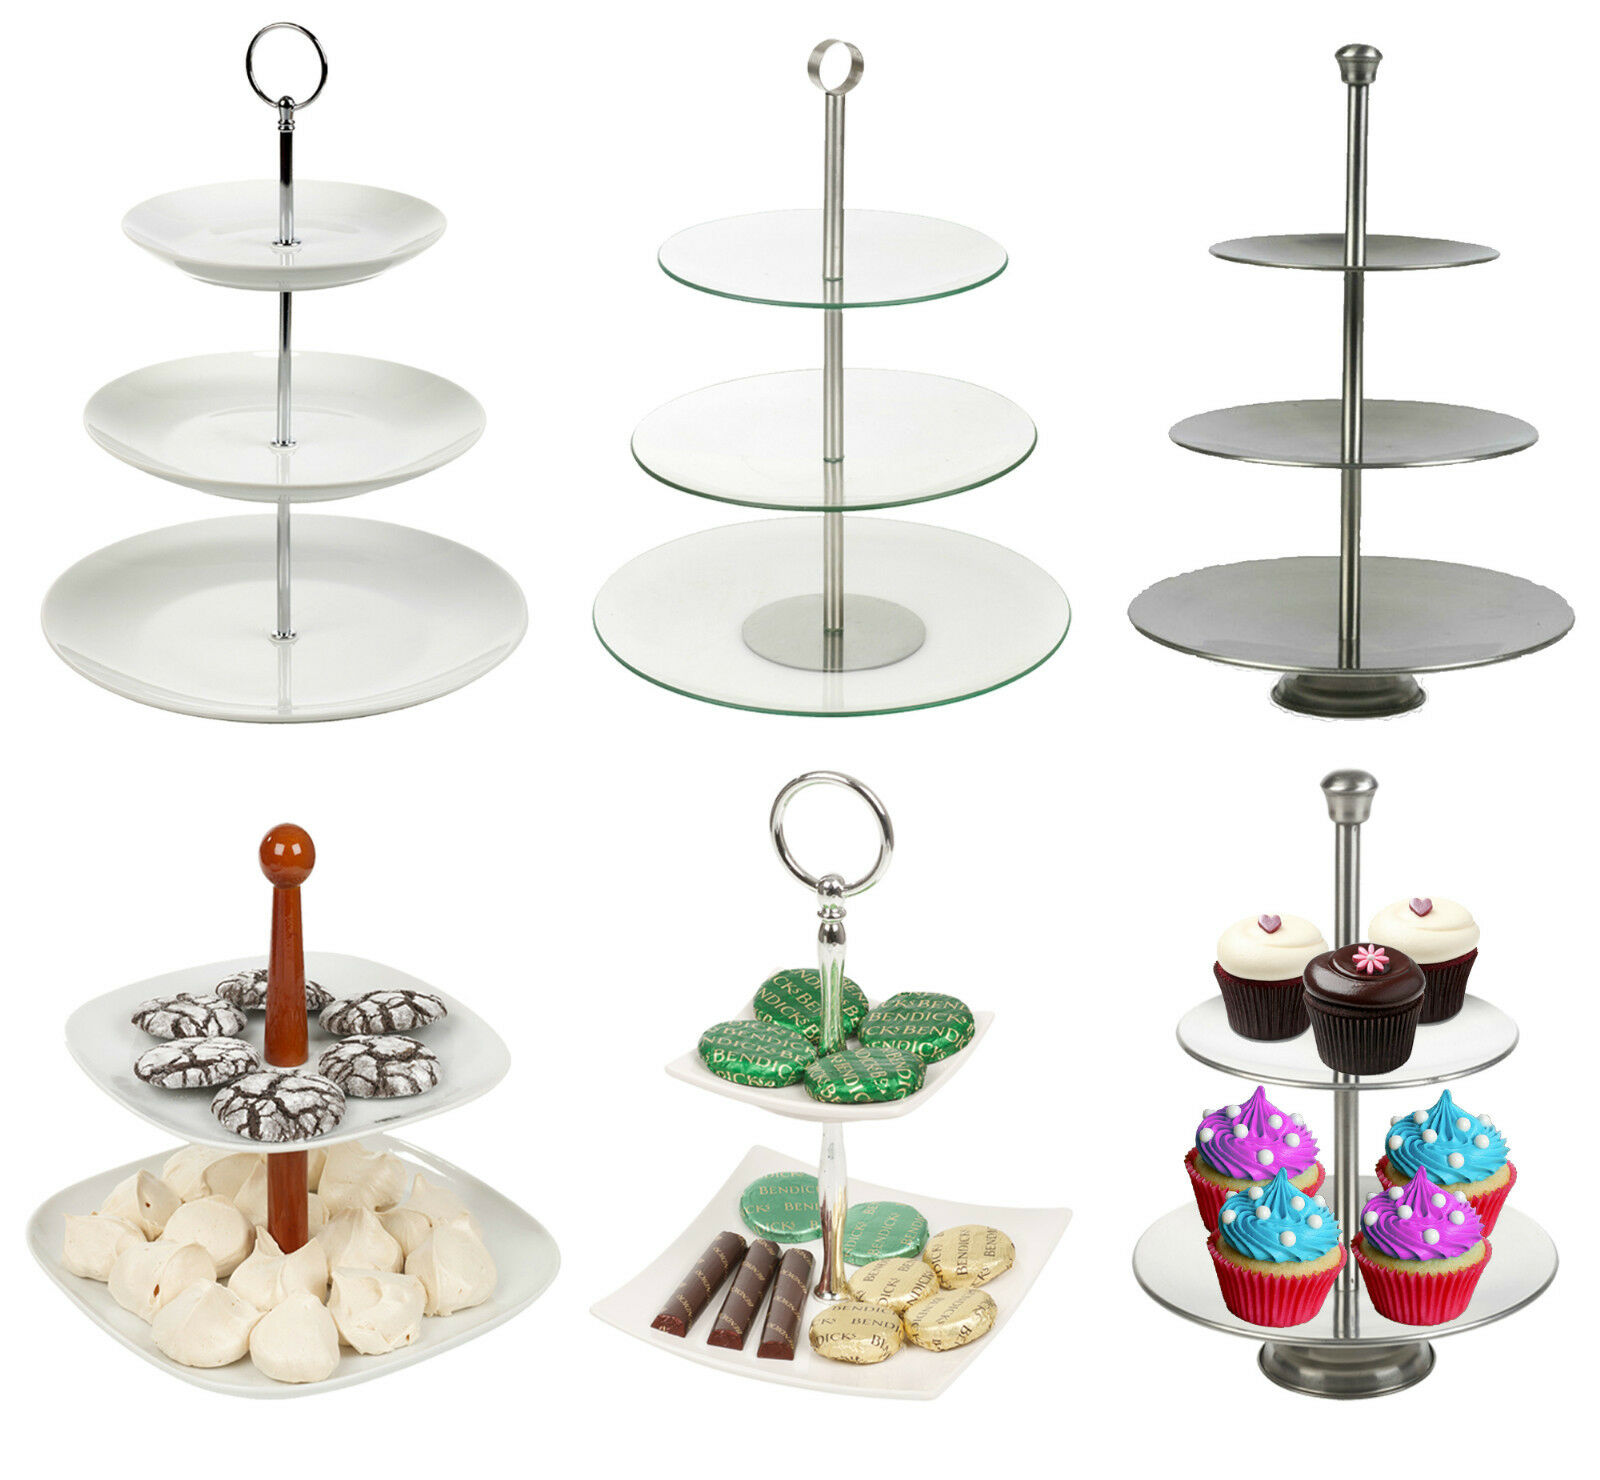 Riser That Can Be Used As A Cake Satand